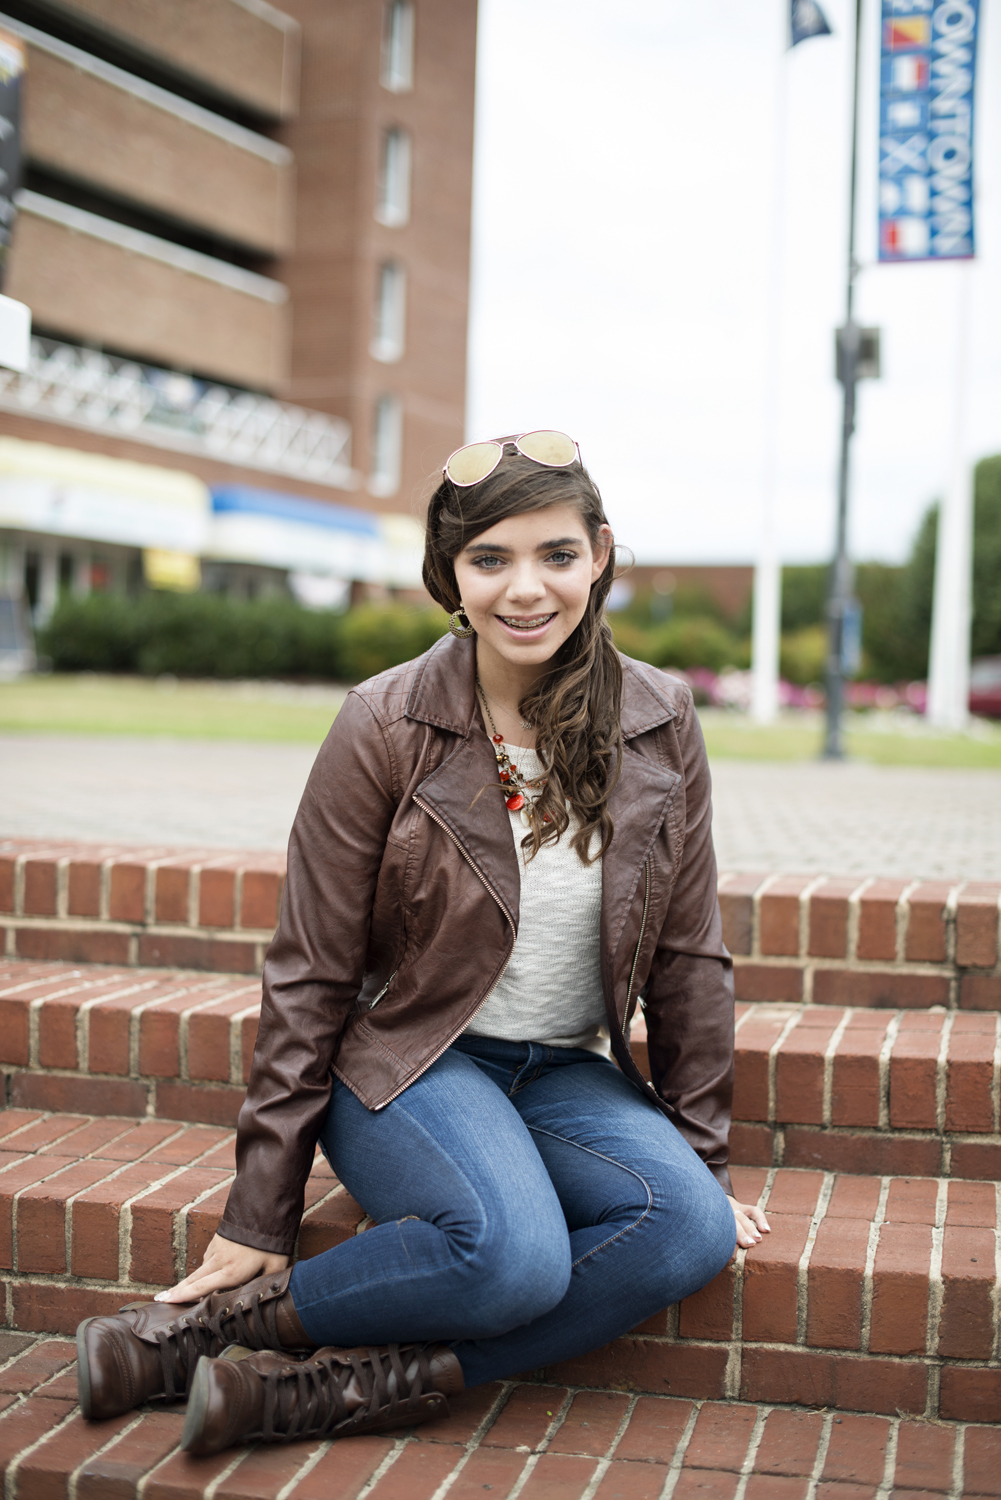 Downtown Virginia senior portraits | leather jacket and sunglasses